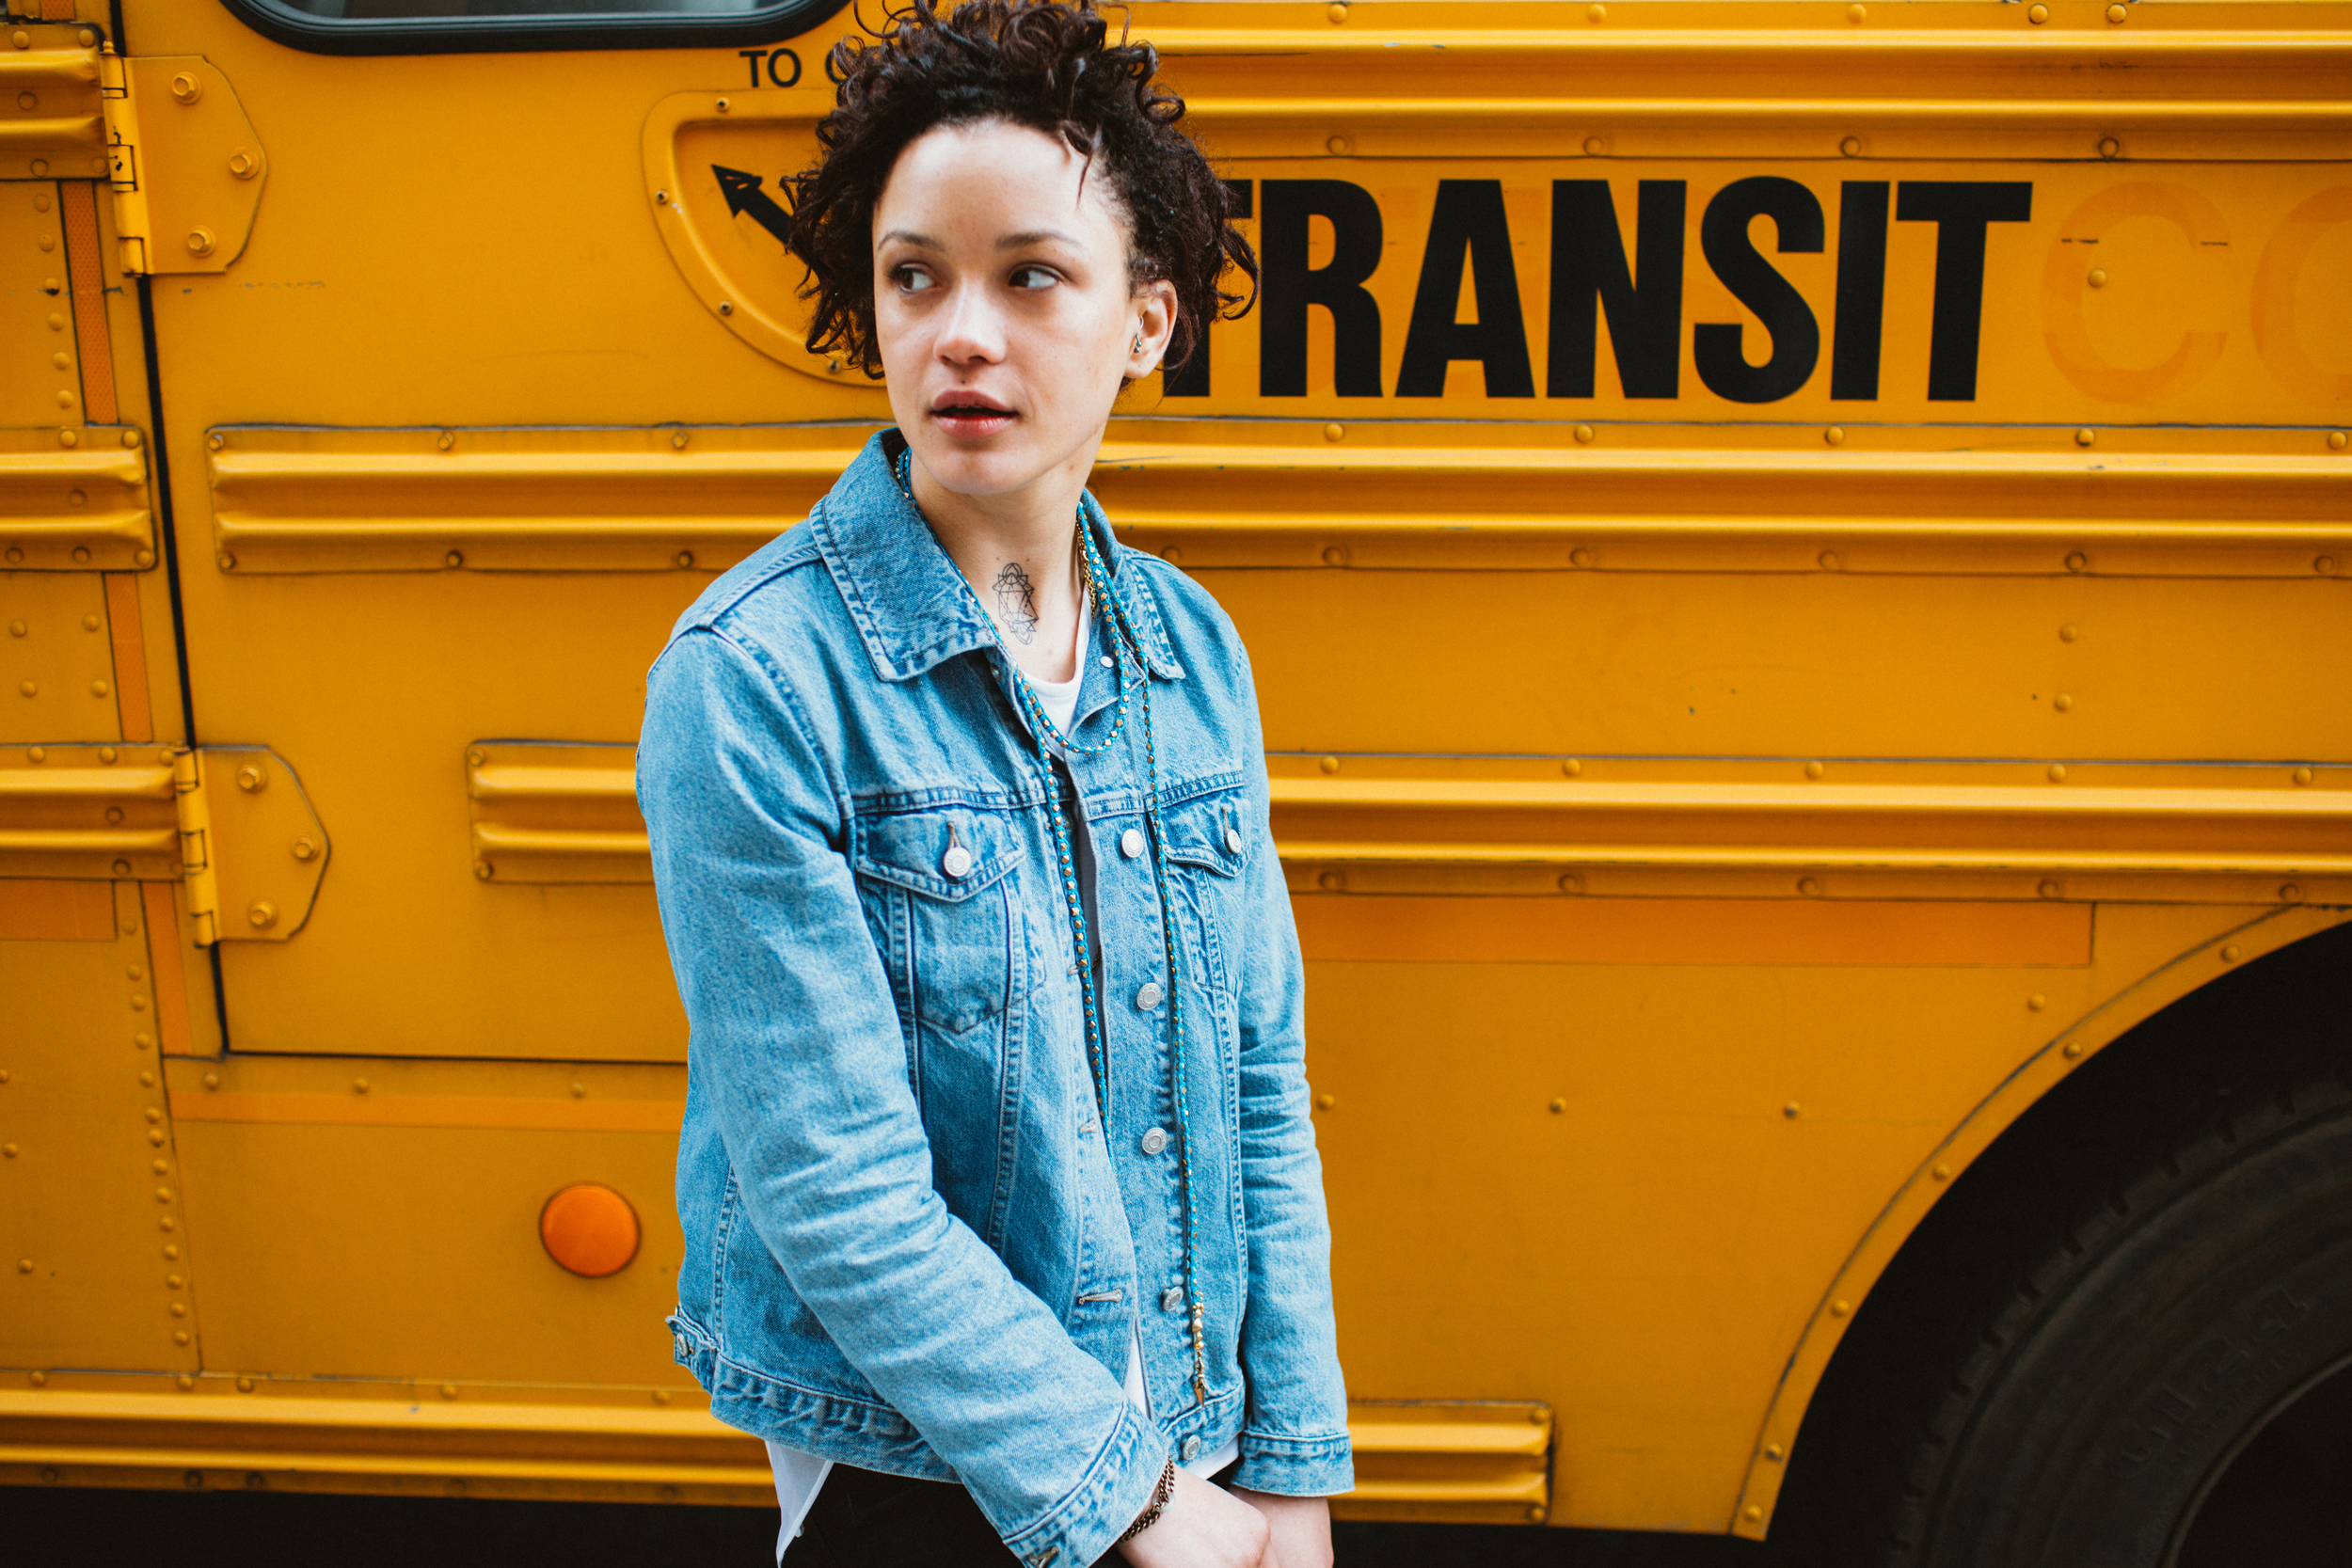 Brooklyn School Bus Lifestyle Photography The Finches